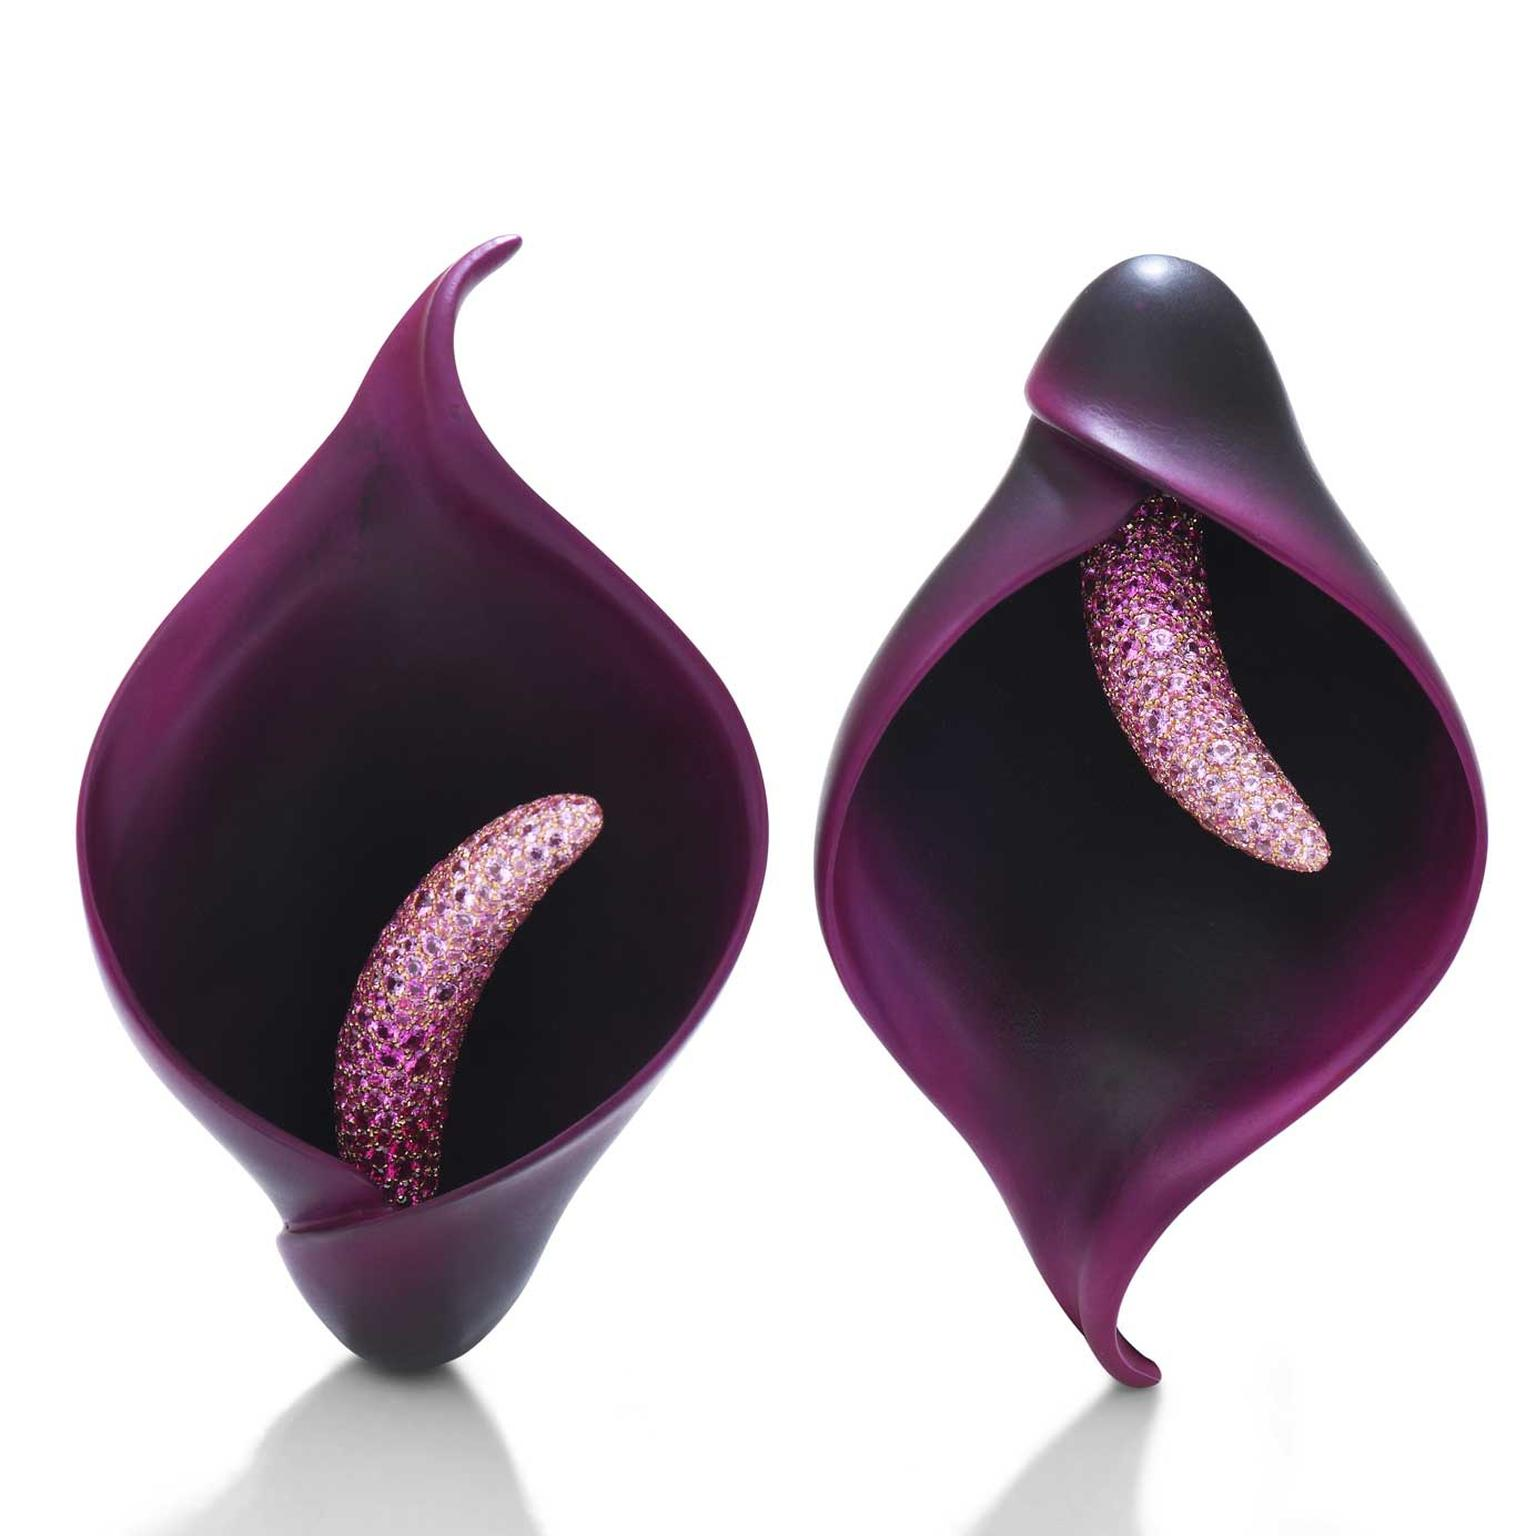 Emmanuel Tarpin violet Arum lily flower earrings